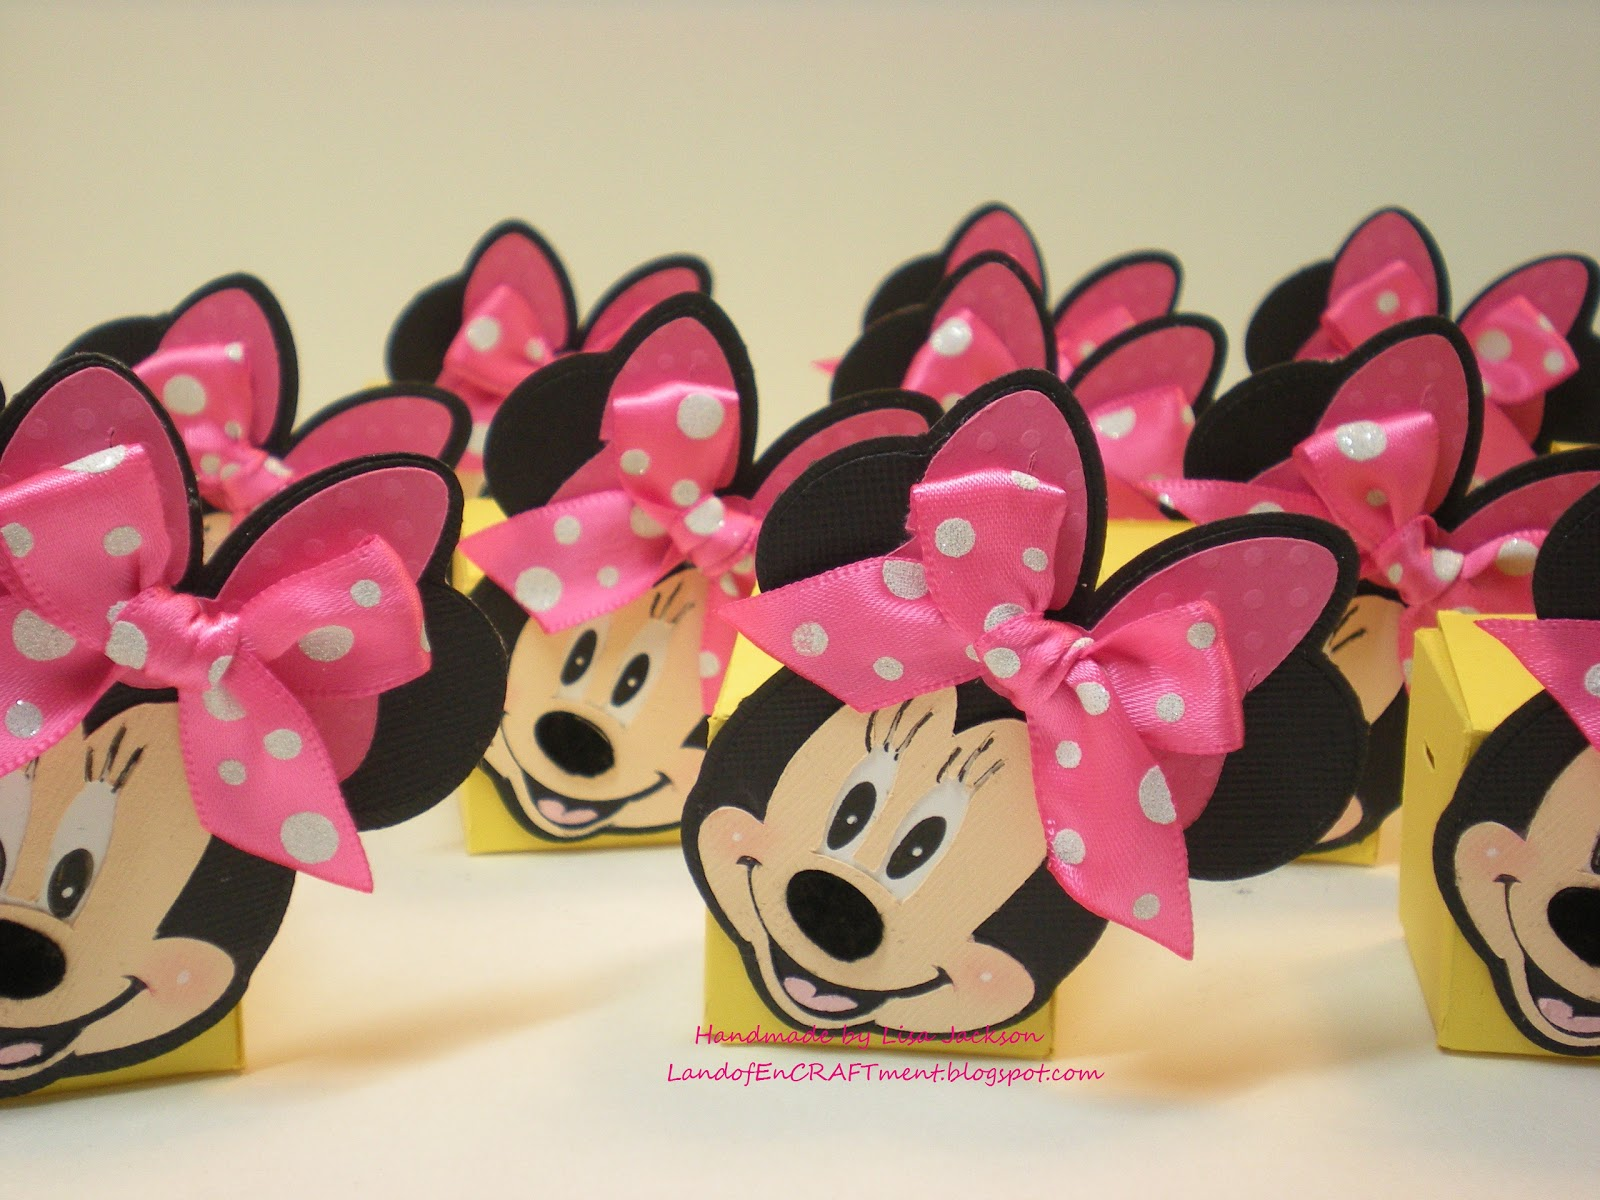 Land of Encraftment: Oh My! Minnie Mouse Birthday Party